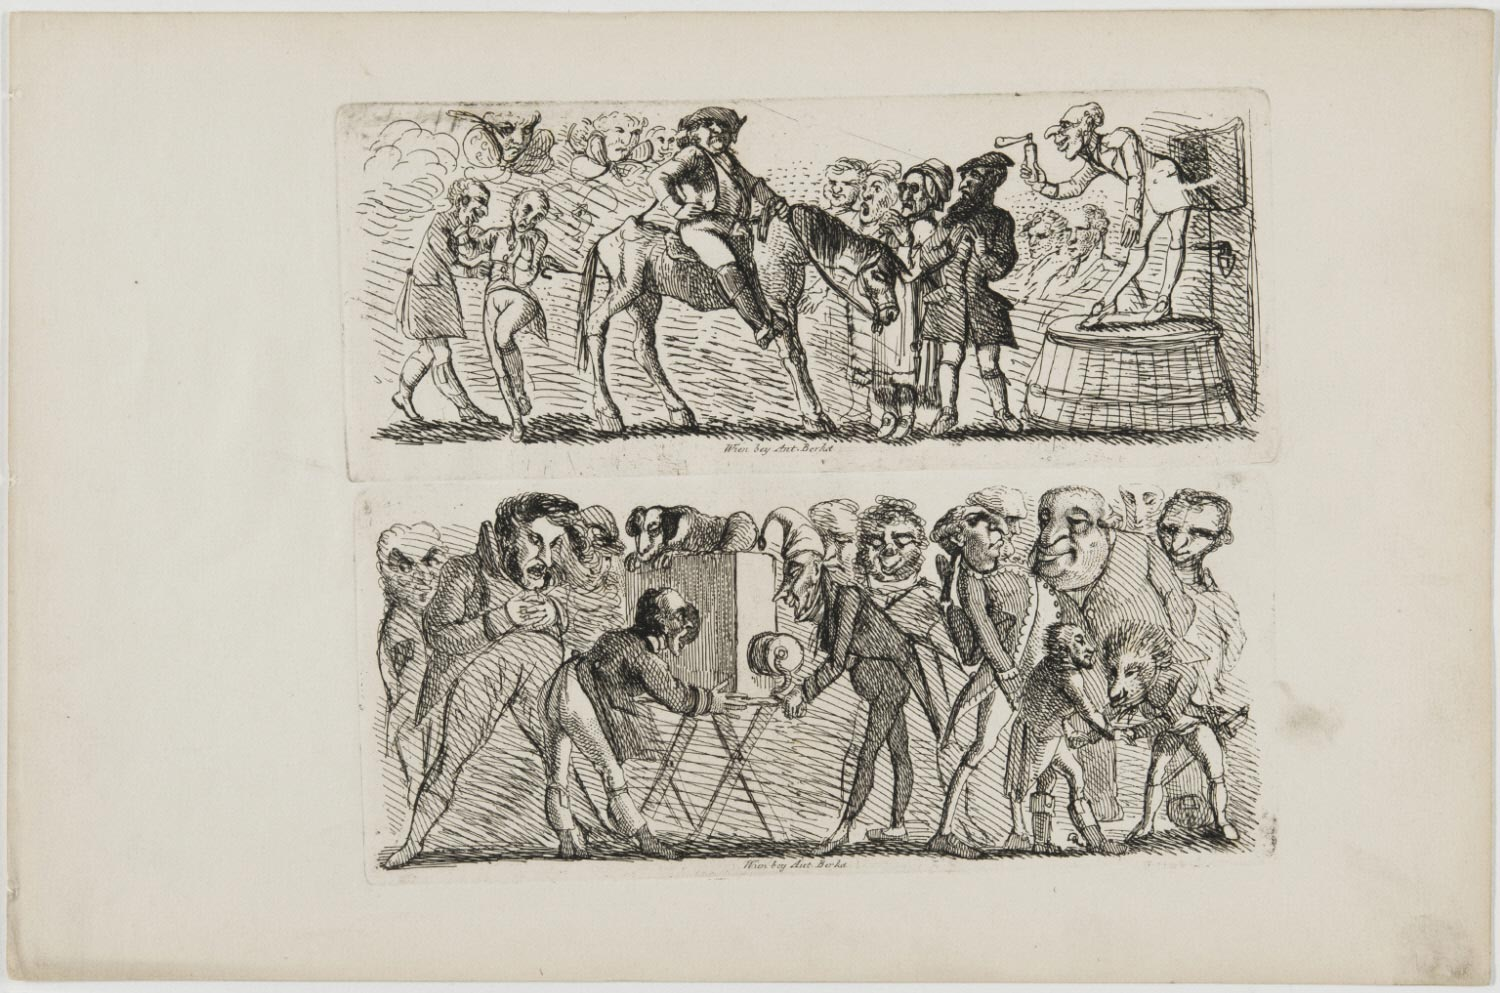 a) A Caricature of an Itinerant Quack Holding up a Bottle of Medicine in front of a Group of Men; b) Caricature of a Group of Men Surrounding a Portable Peep Show